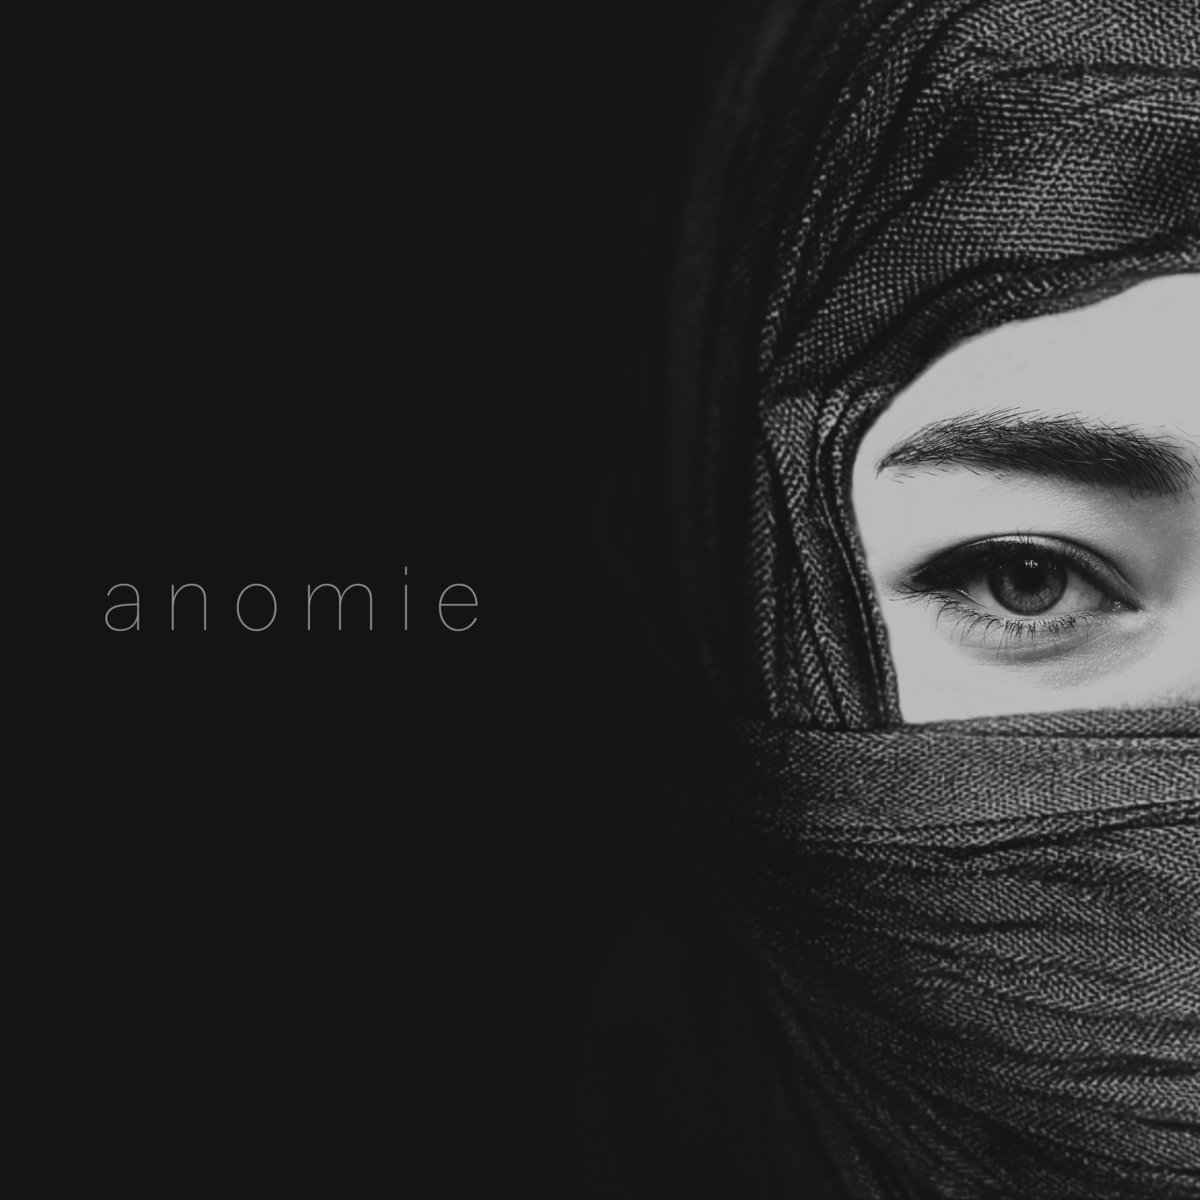 Violet Cold - Anomie - Cover Art